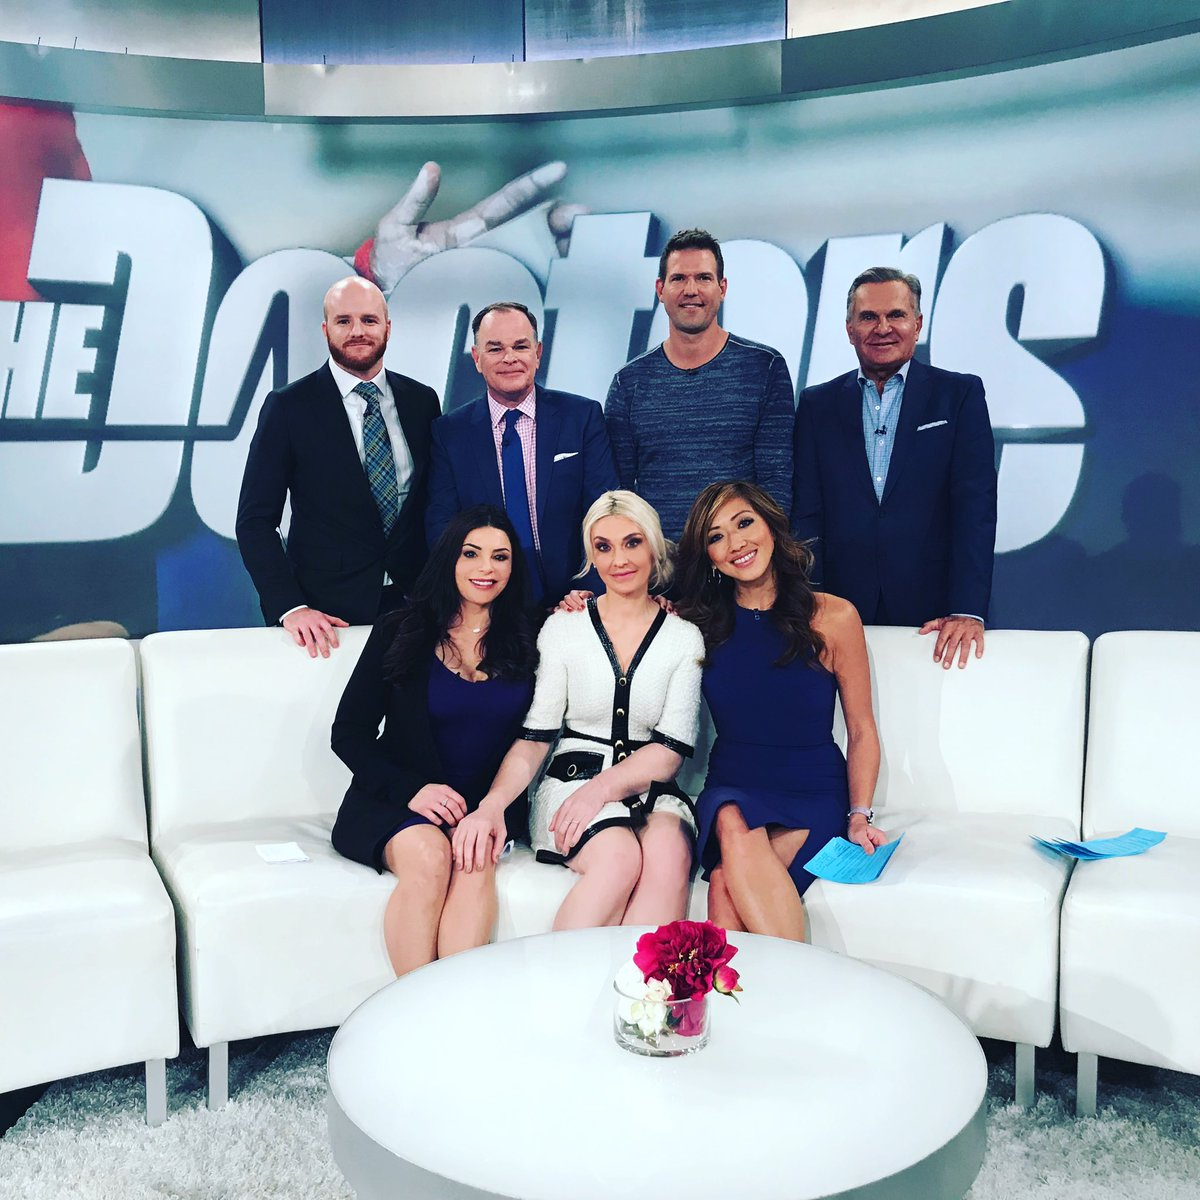 @TheDoctors Jan 14. #StartByBelieving